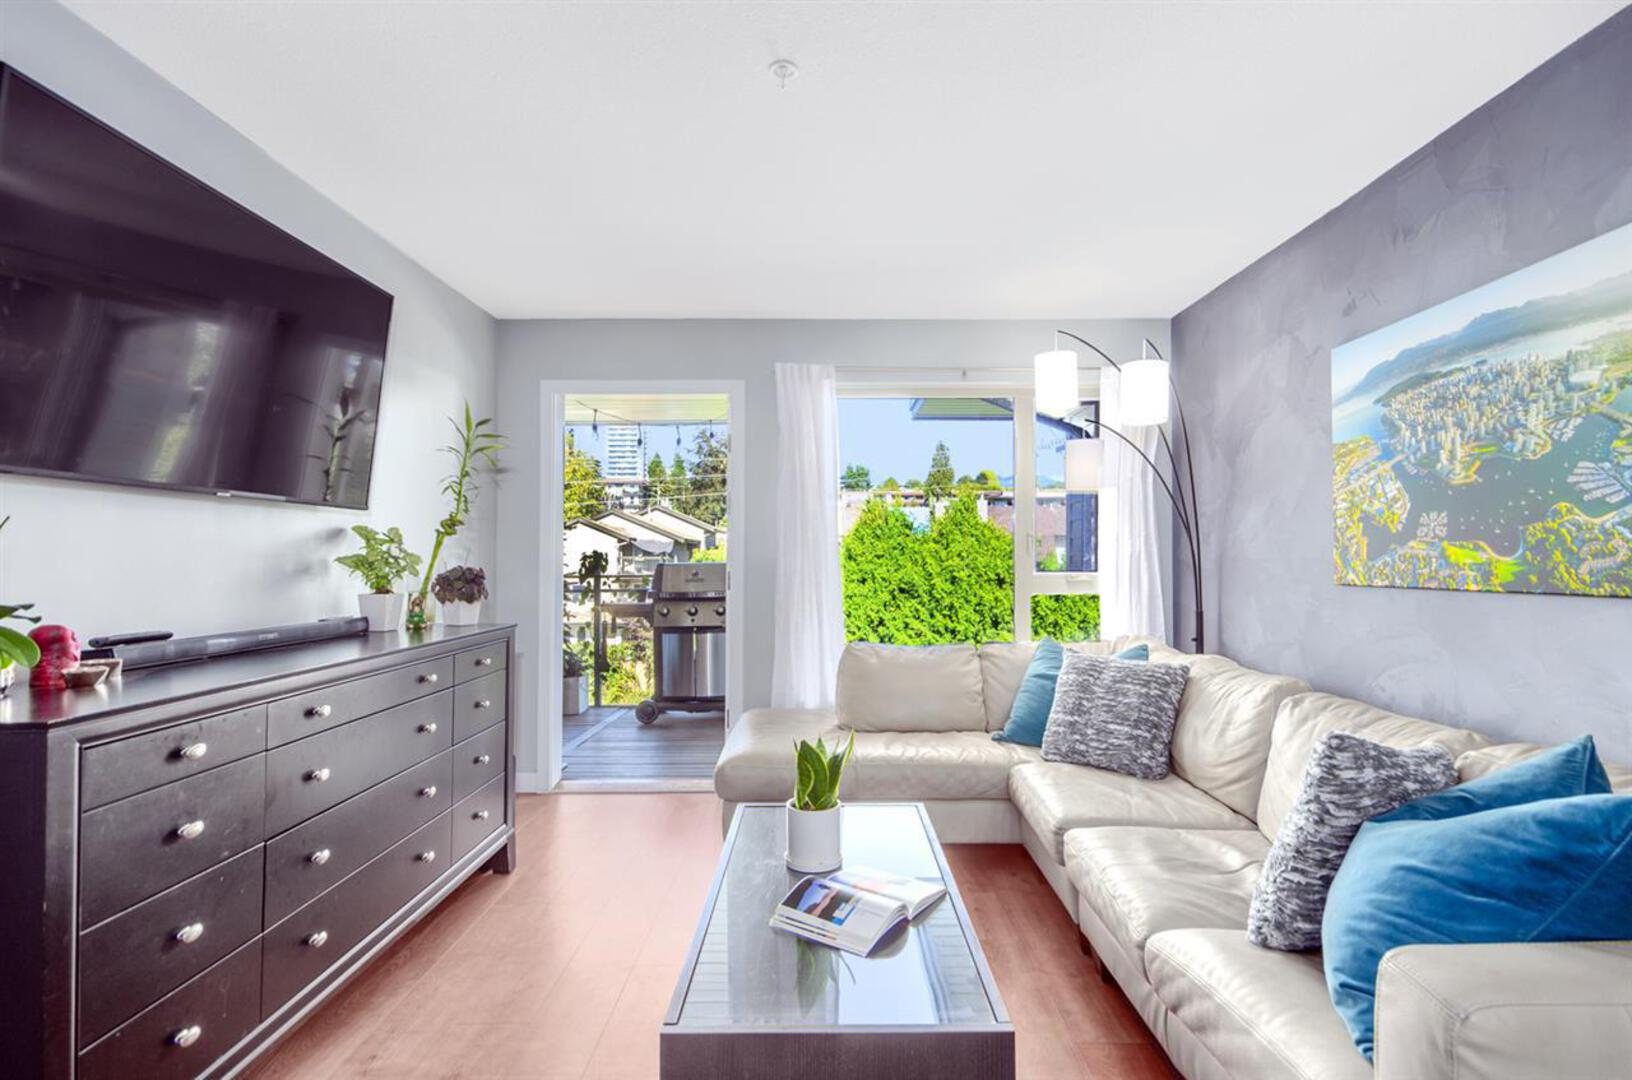 407 - 221 E 3rd Street, Lower Lonsdale, North Vancouver 2